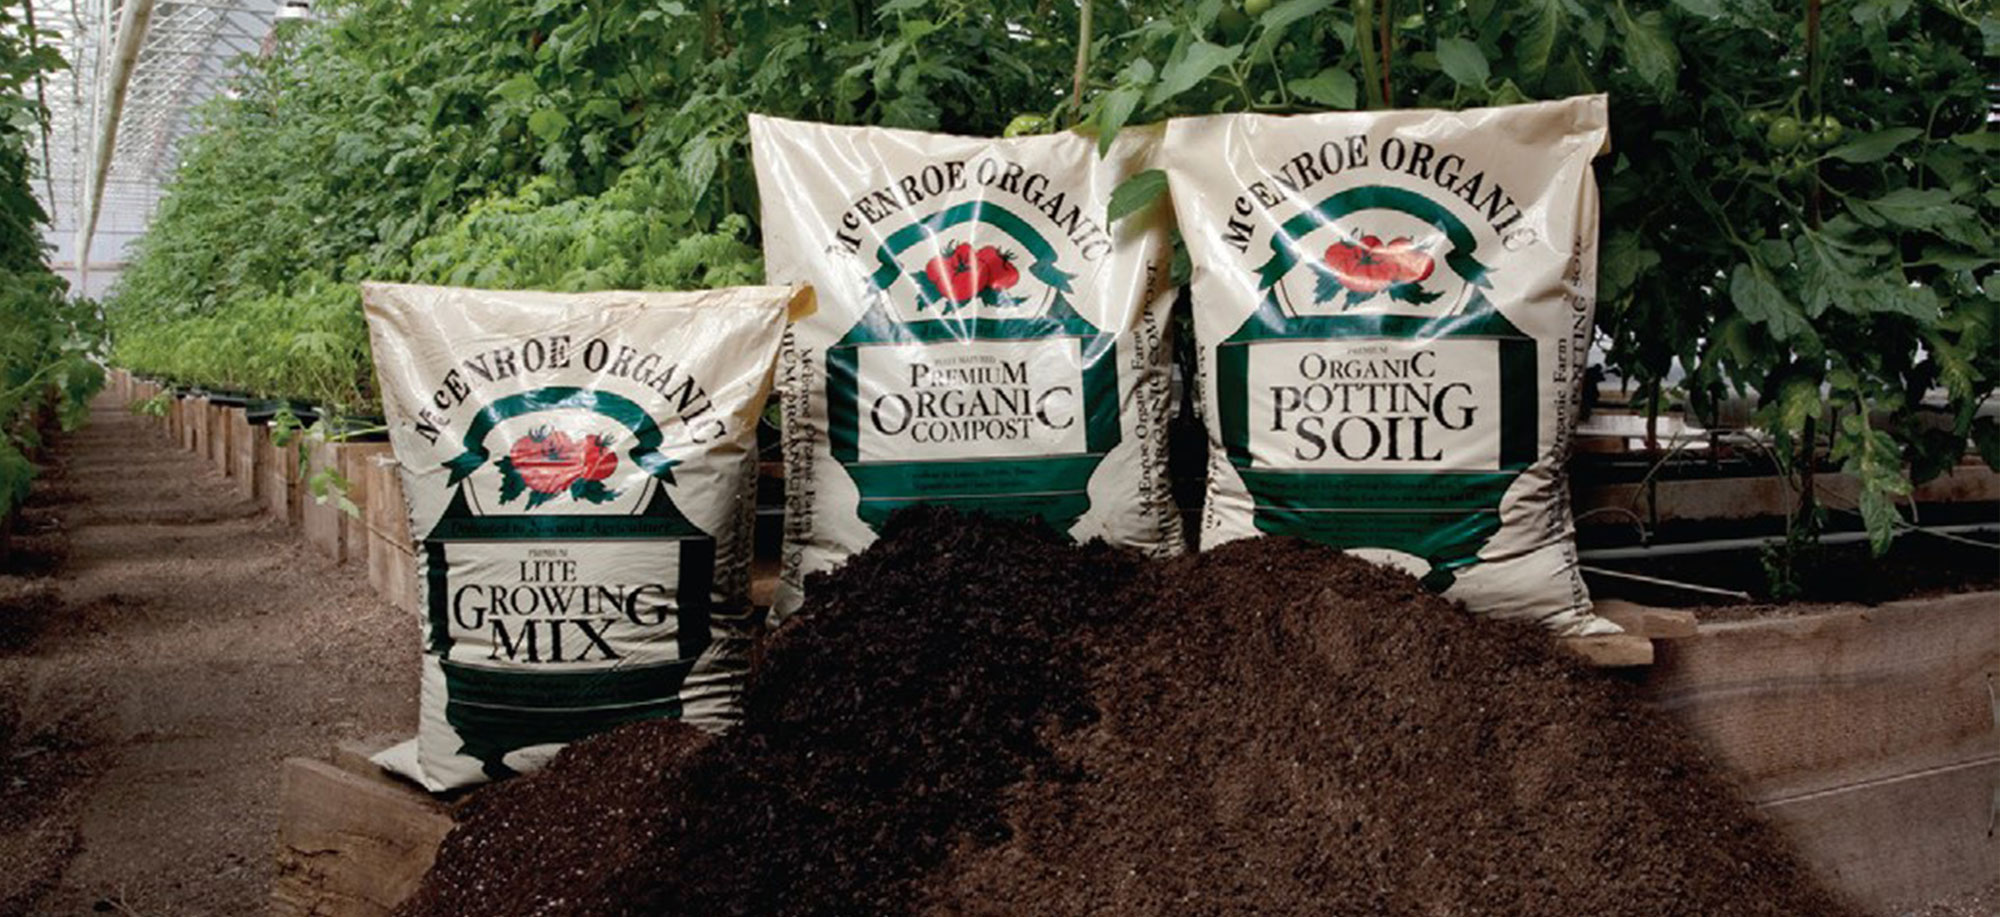 Our Compost is Converted from Food Scraps, Leaves, and Manures